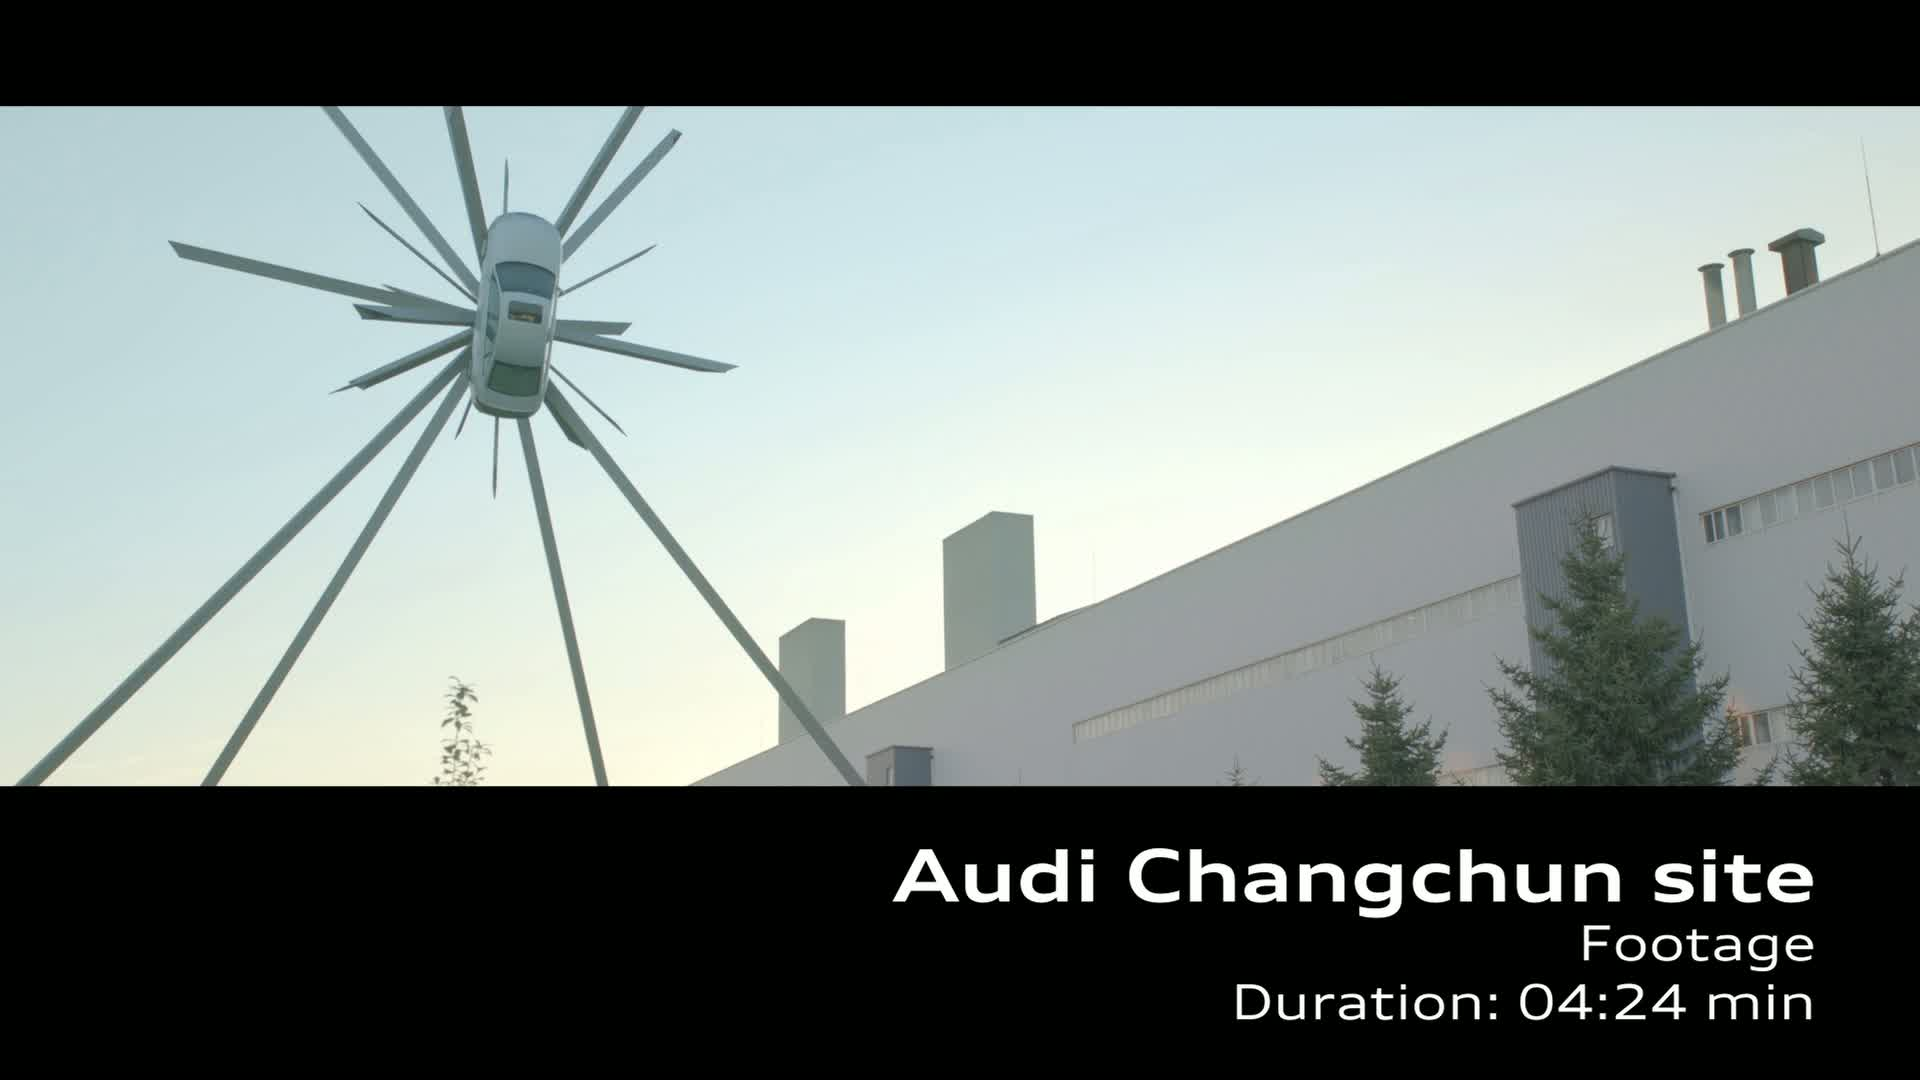 AUDI AG site in China - Changchun